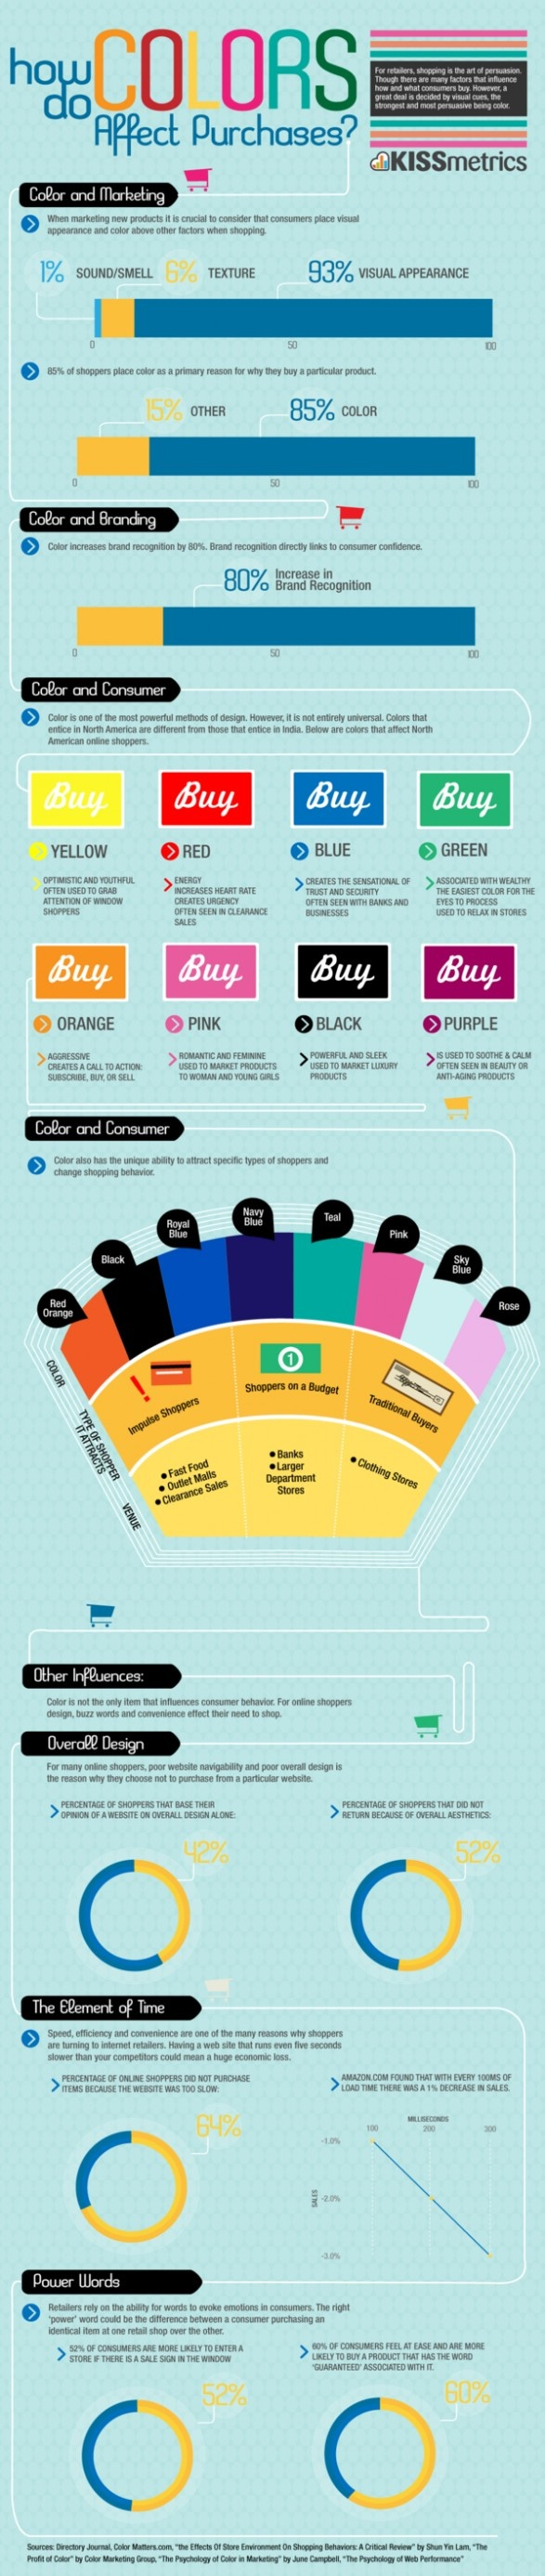 How do colors affect purchases?  Planspot.com